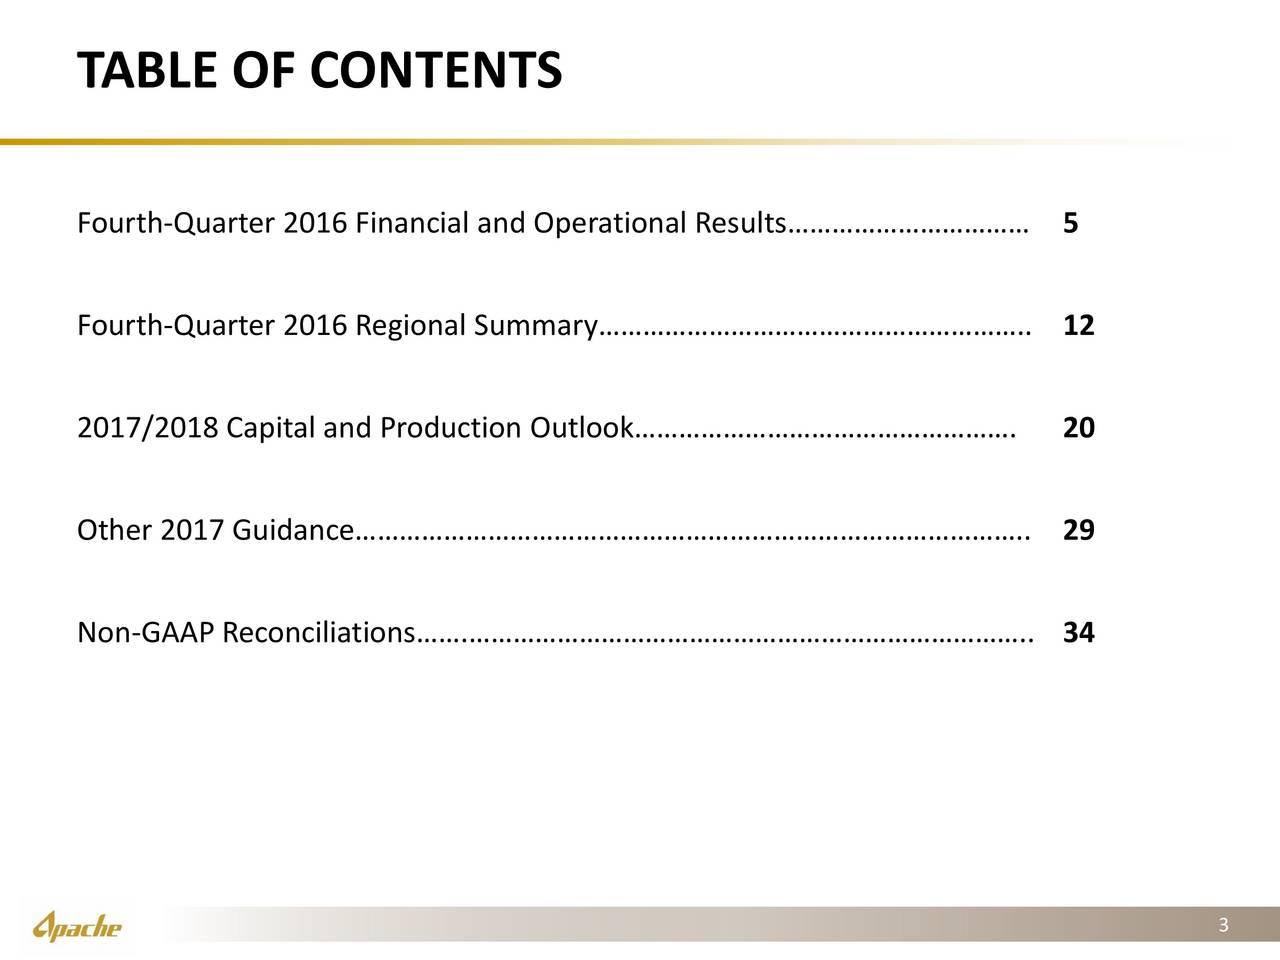 Fourth-Quarter 2016 Financial and Operational Results5 Fourth-Quarter 2016 Regional Summary.. 12 2017/2018 Capital and Production Outlook. 20 Other 2017 Guidance.. 29 Non-GAAP Reconciliations... 34 3